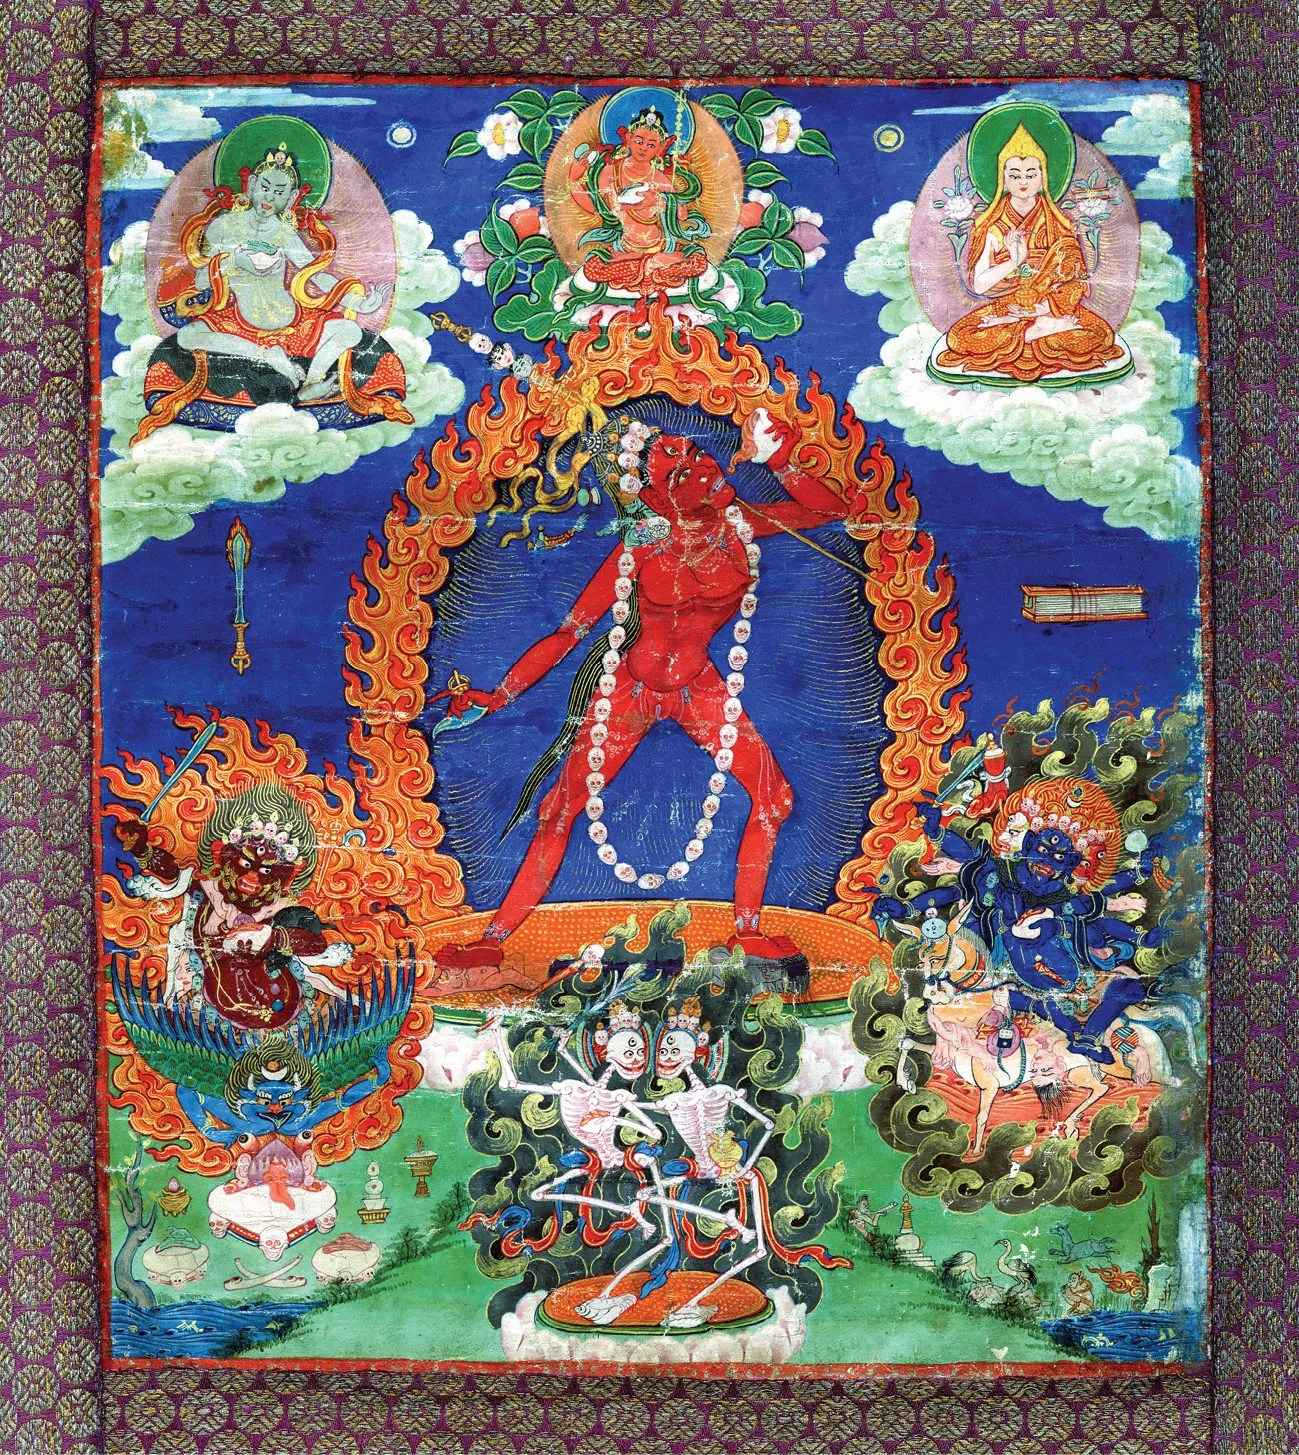 ABOVE Thangka painting of the goddess Naro Dakini (a form of Vajrayogini), Tibet, 18th-19th century. Ink and watercolour on cloth, with silk brocade borders. Size of painting: 26.3 x 23cm